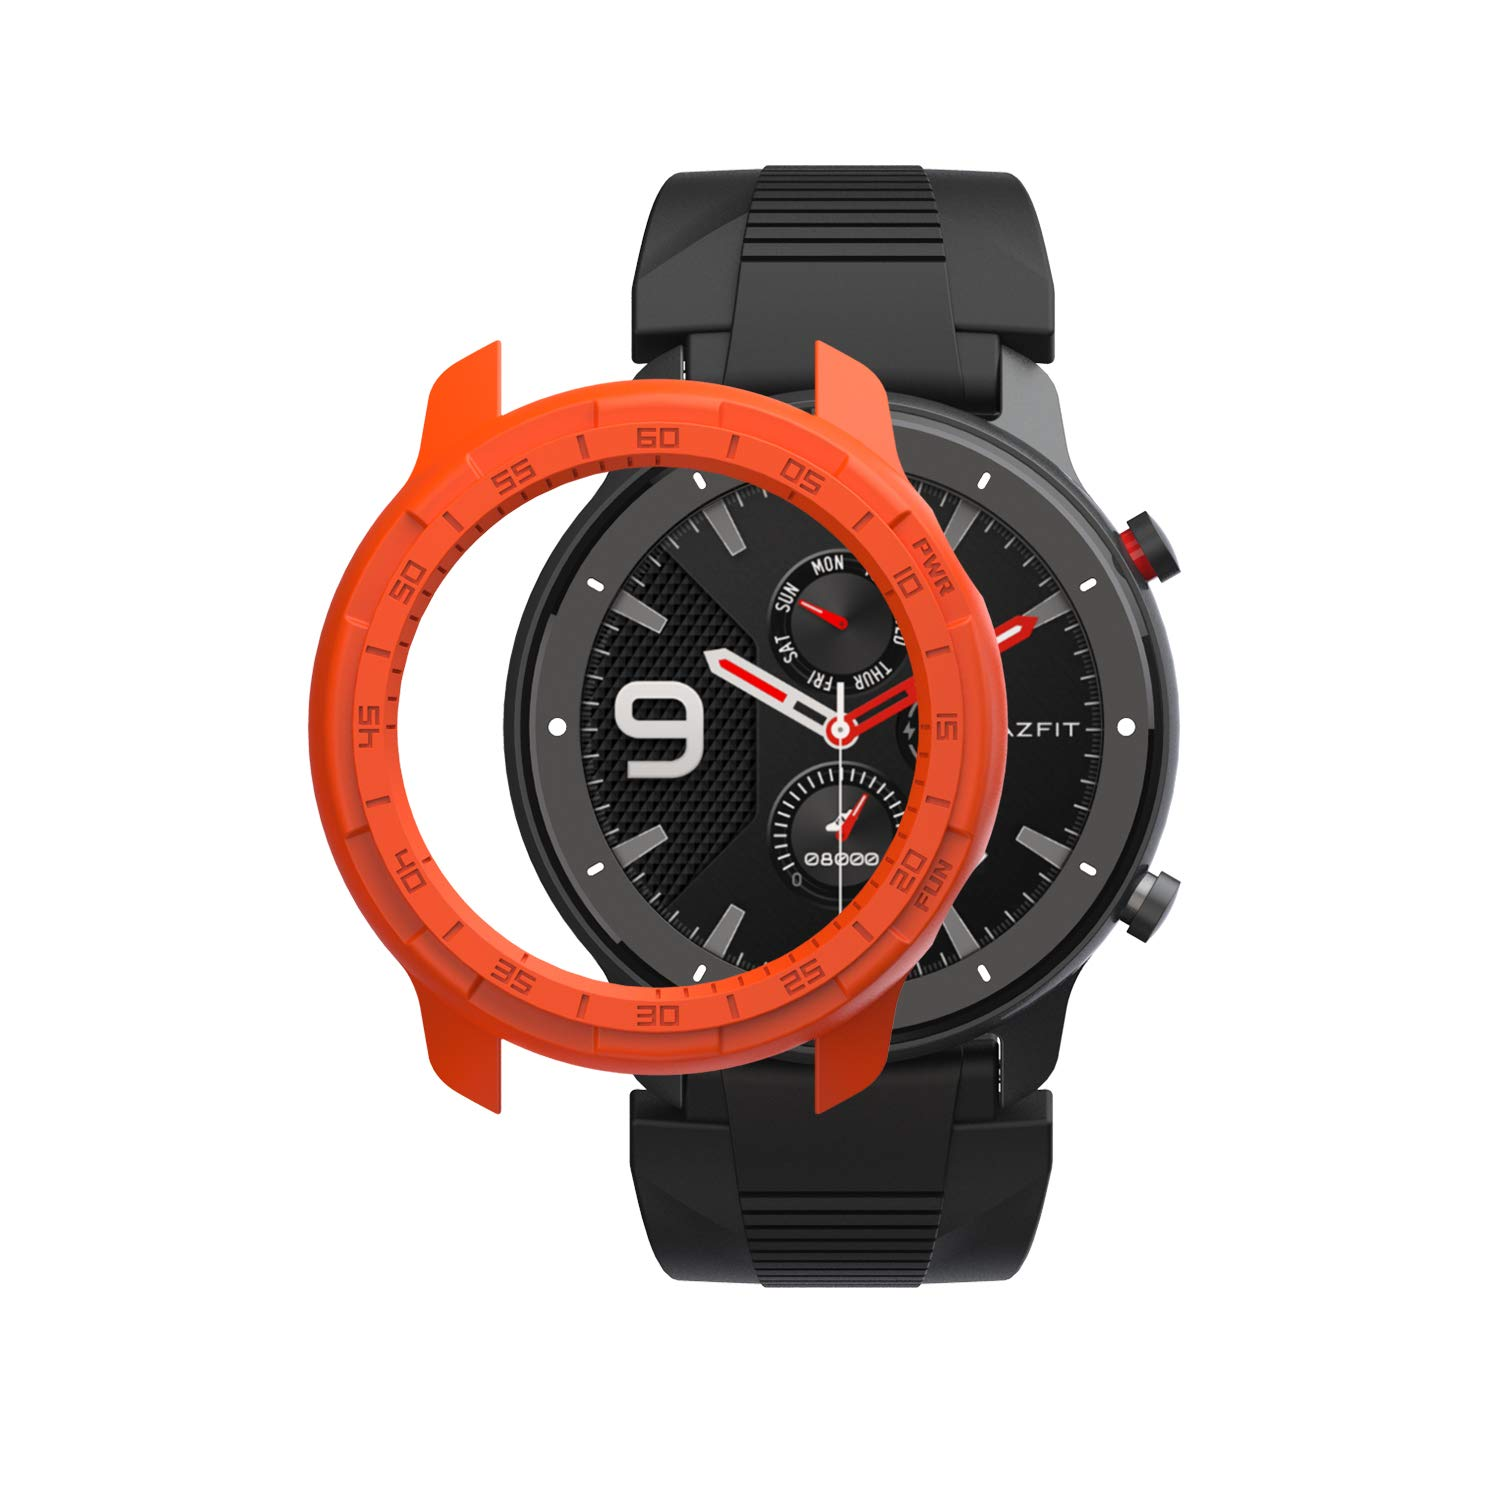 Amazon.com: SIKAI Protective Case Cover for Amazfit GTR 47mm ...